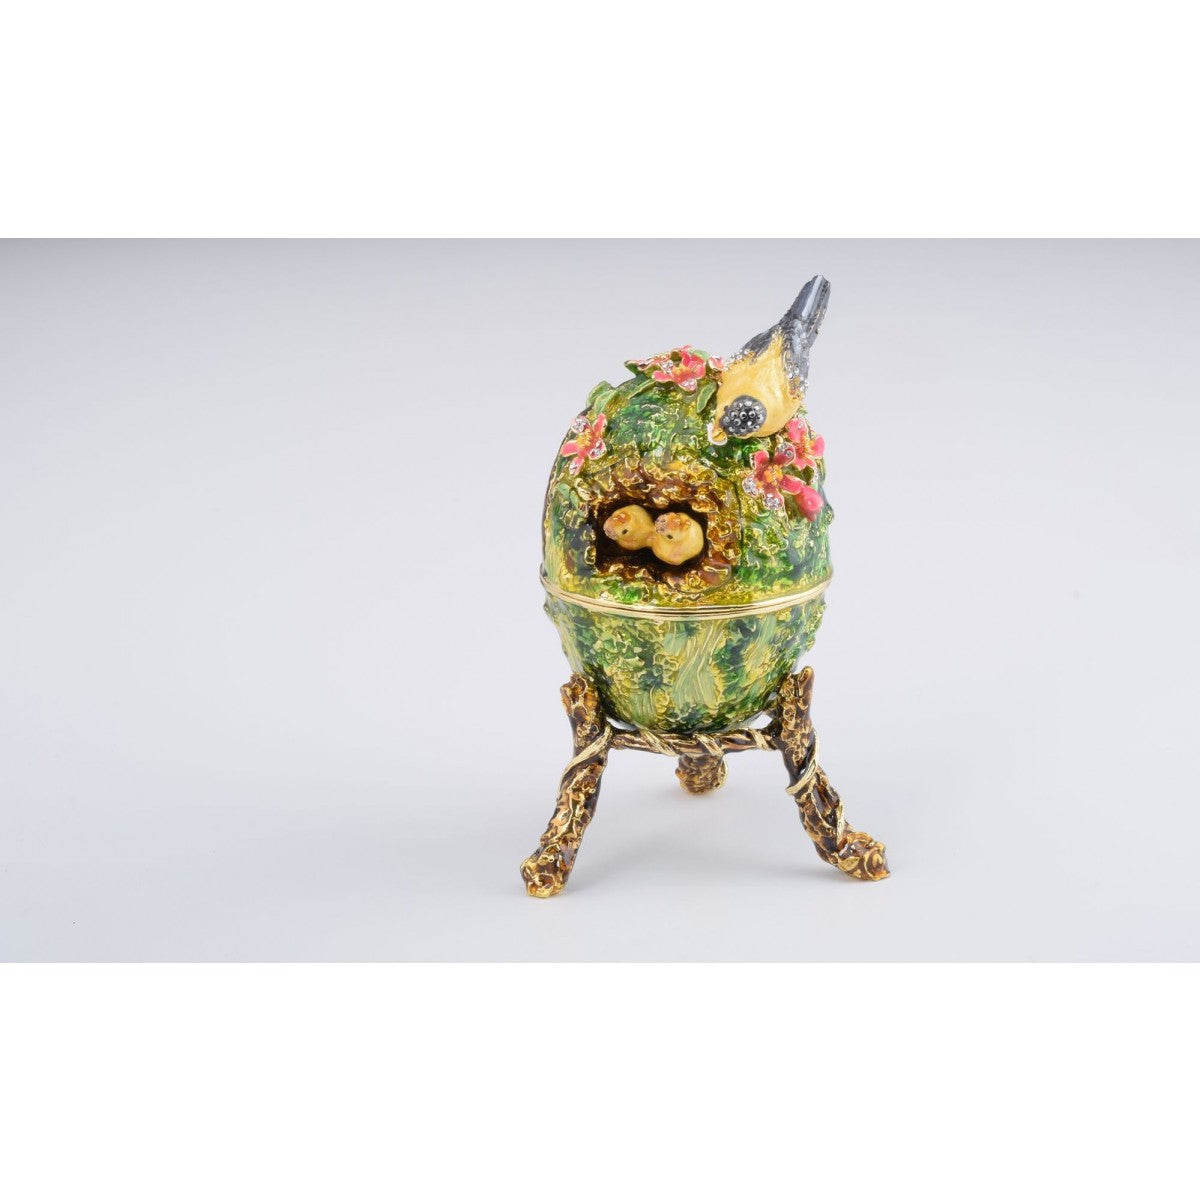 Bird Nest Faberge Style Egg Trinket Box by Keren Kopal